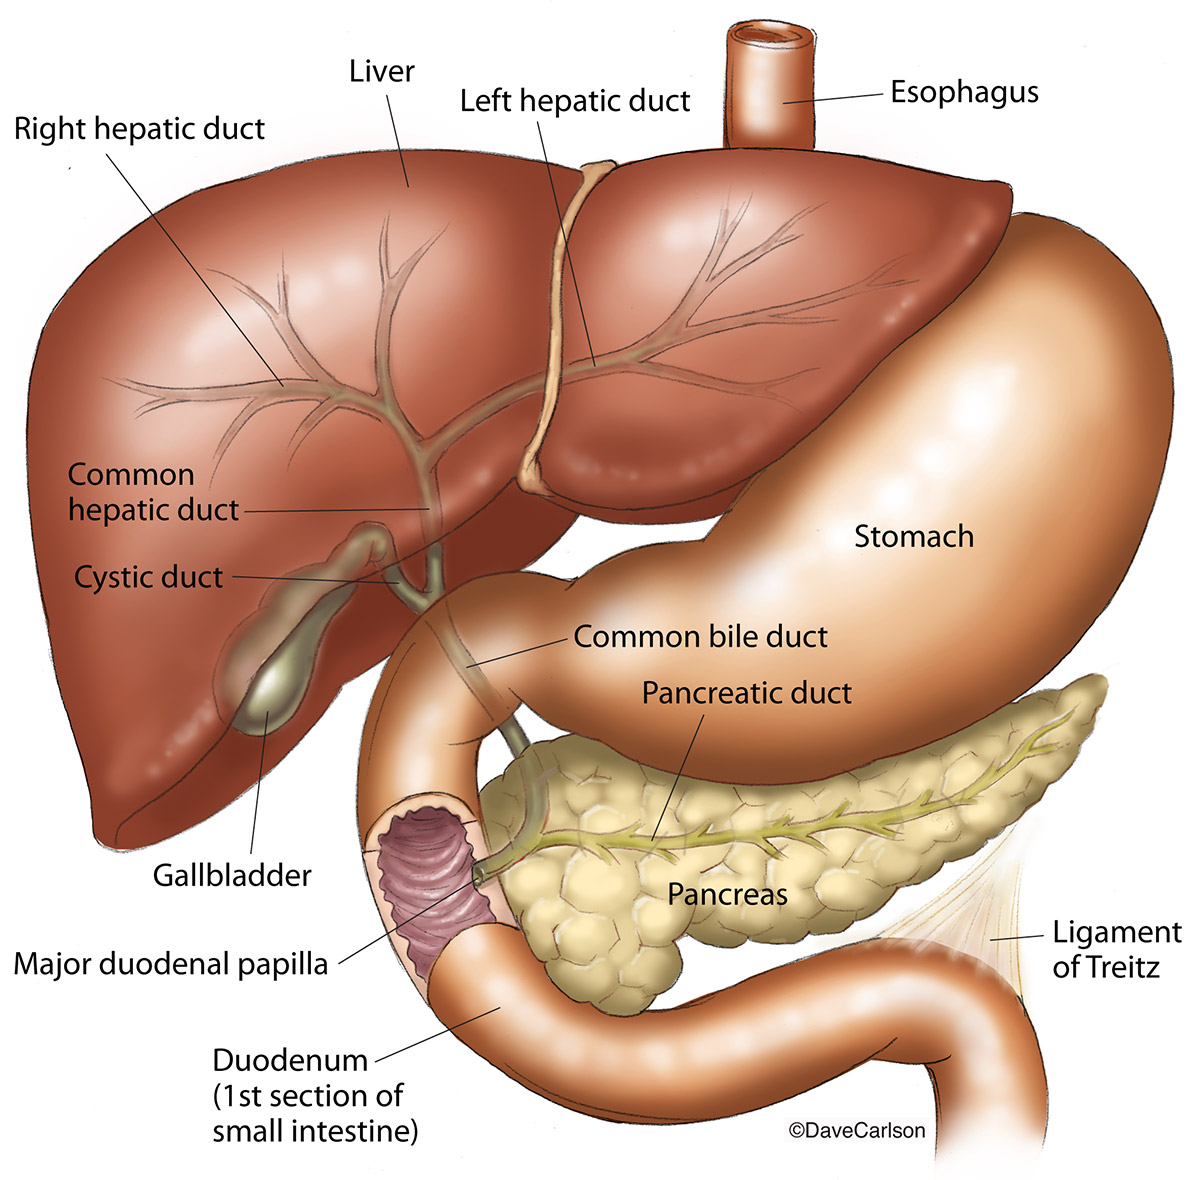 Illustration, anatomic relationship, liver, stomach, pancreas, gallbladder, duodenum, photo